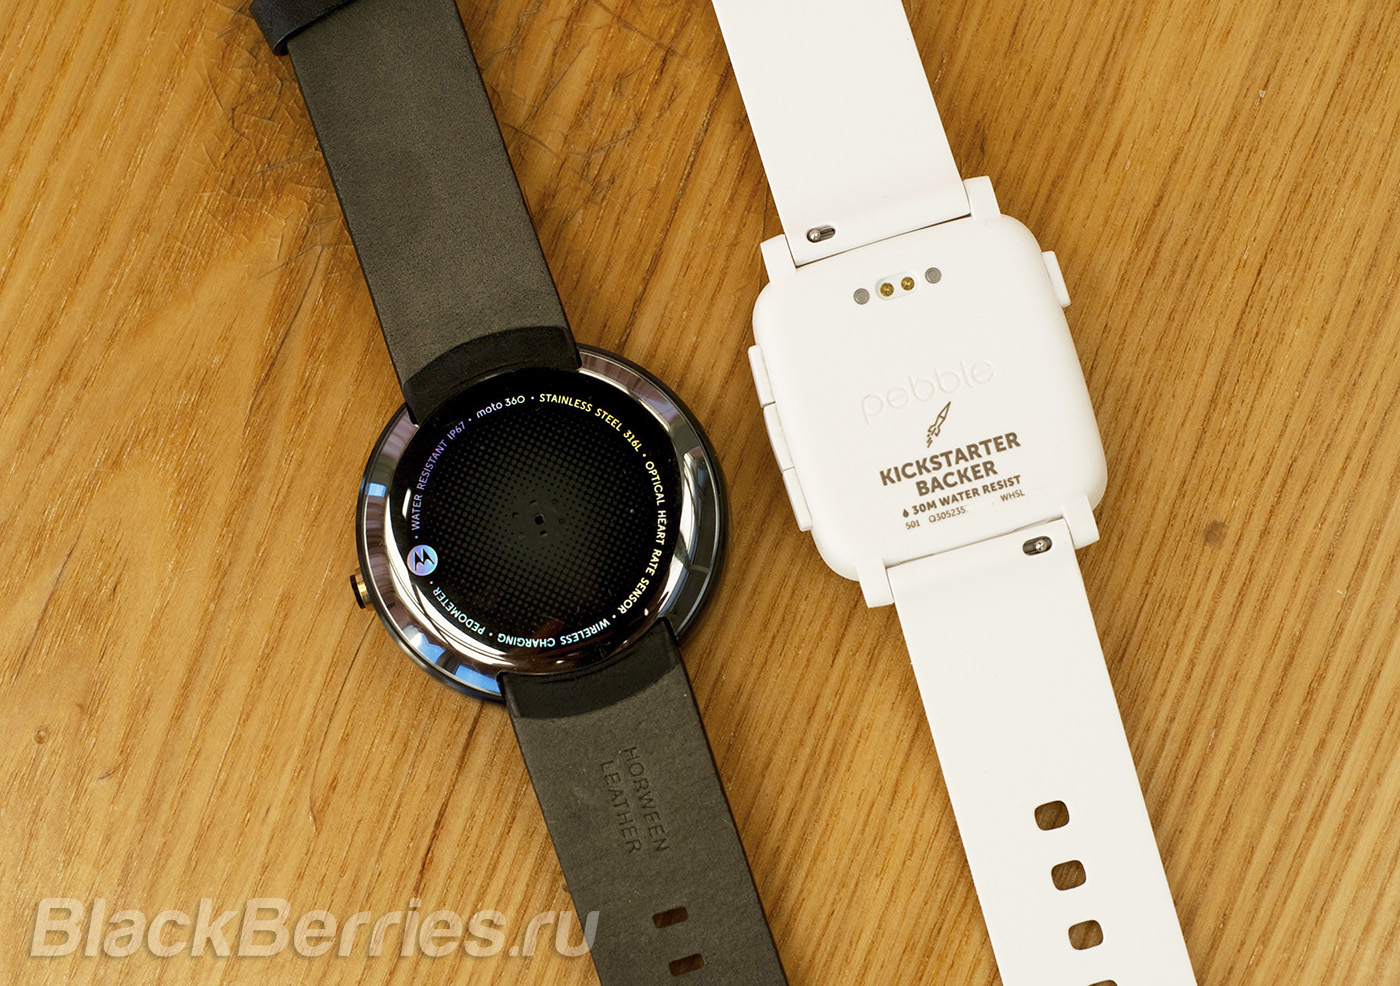 BlackBerry-Passport-Pebble-Time-17